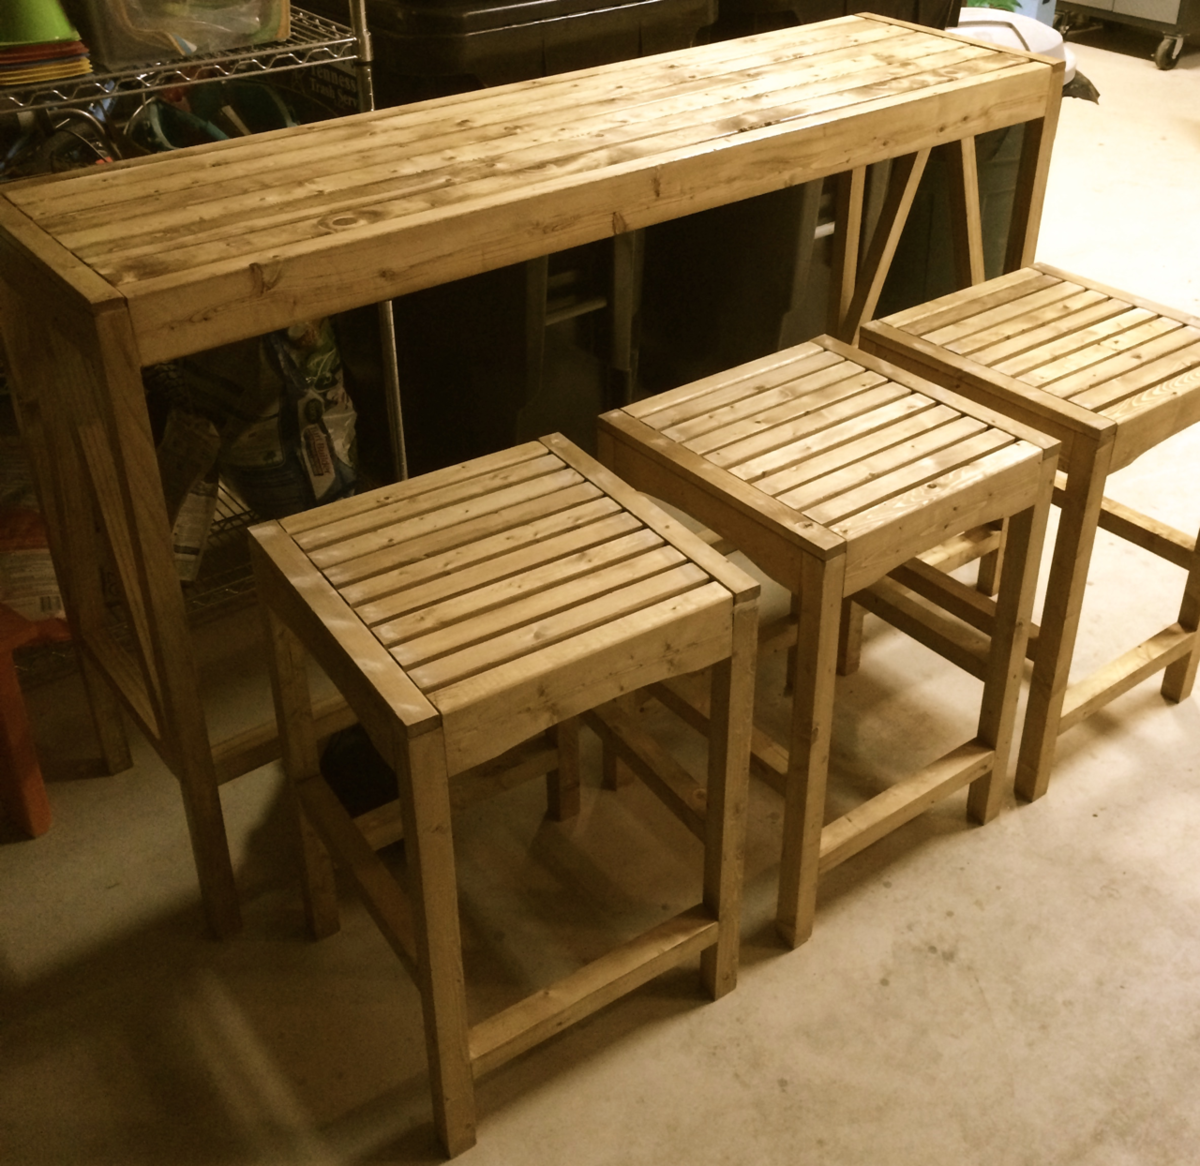 Sutton Custom Outdoor Bar Stools - DIY Projects